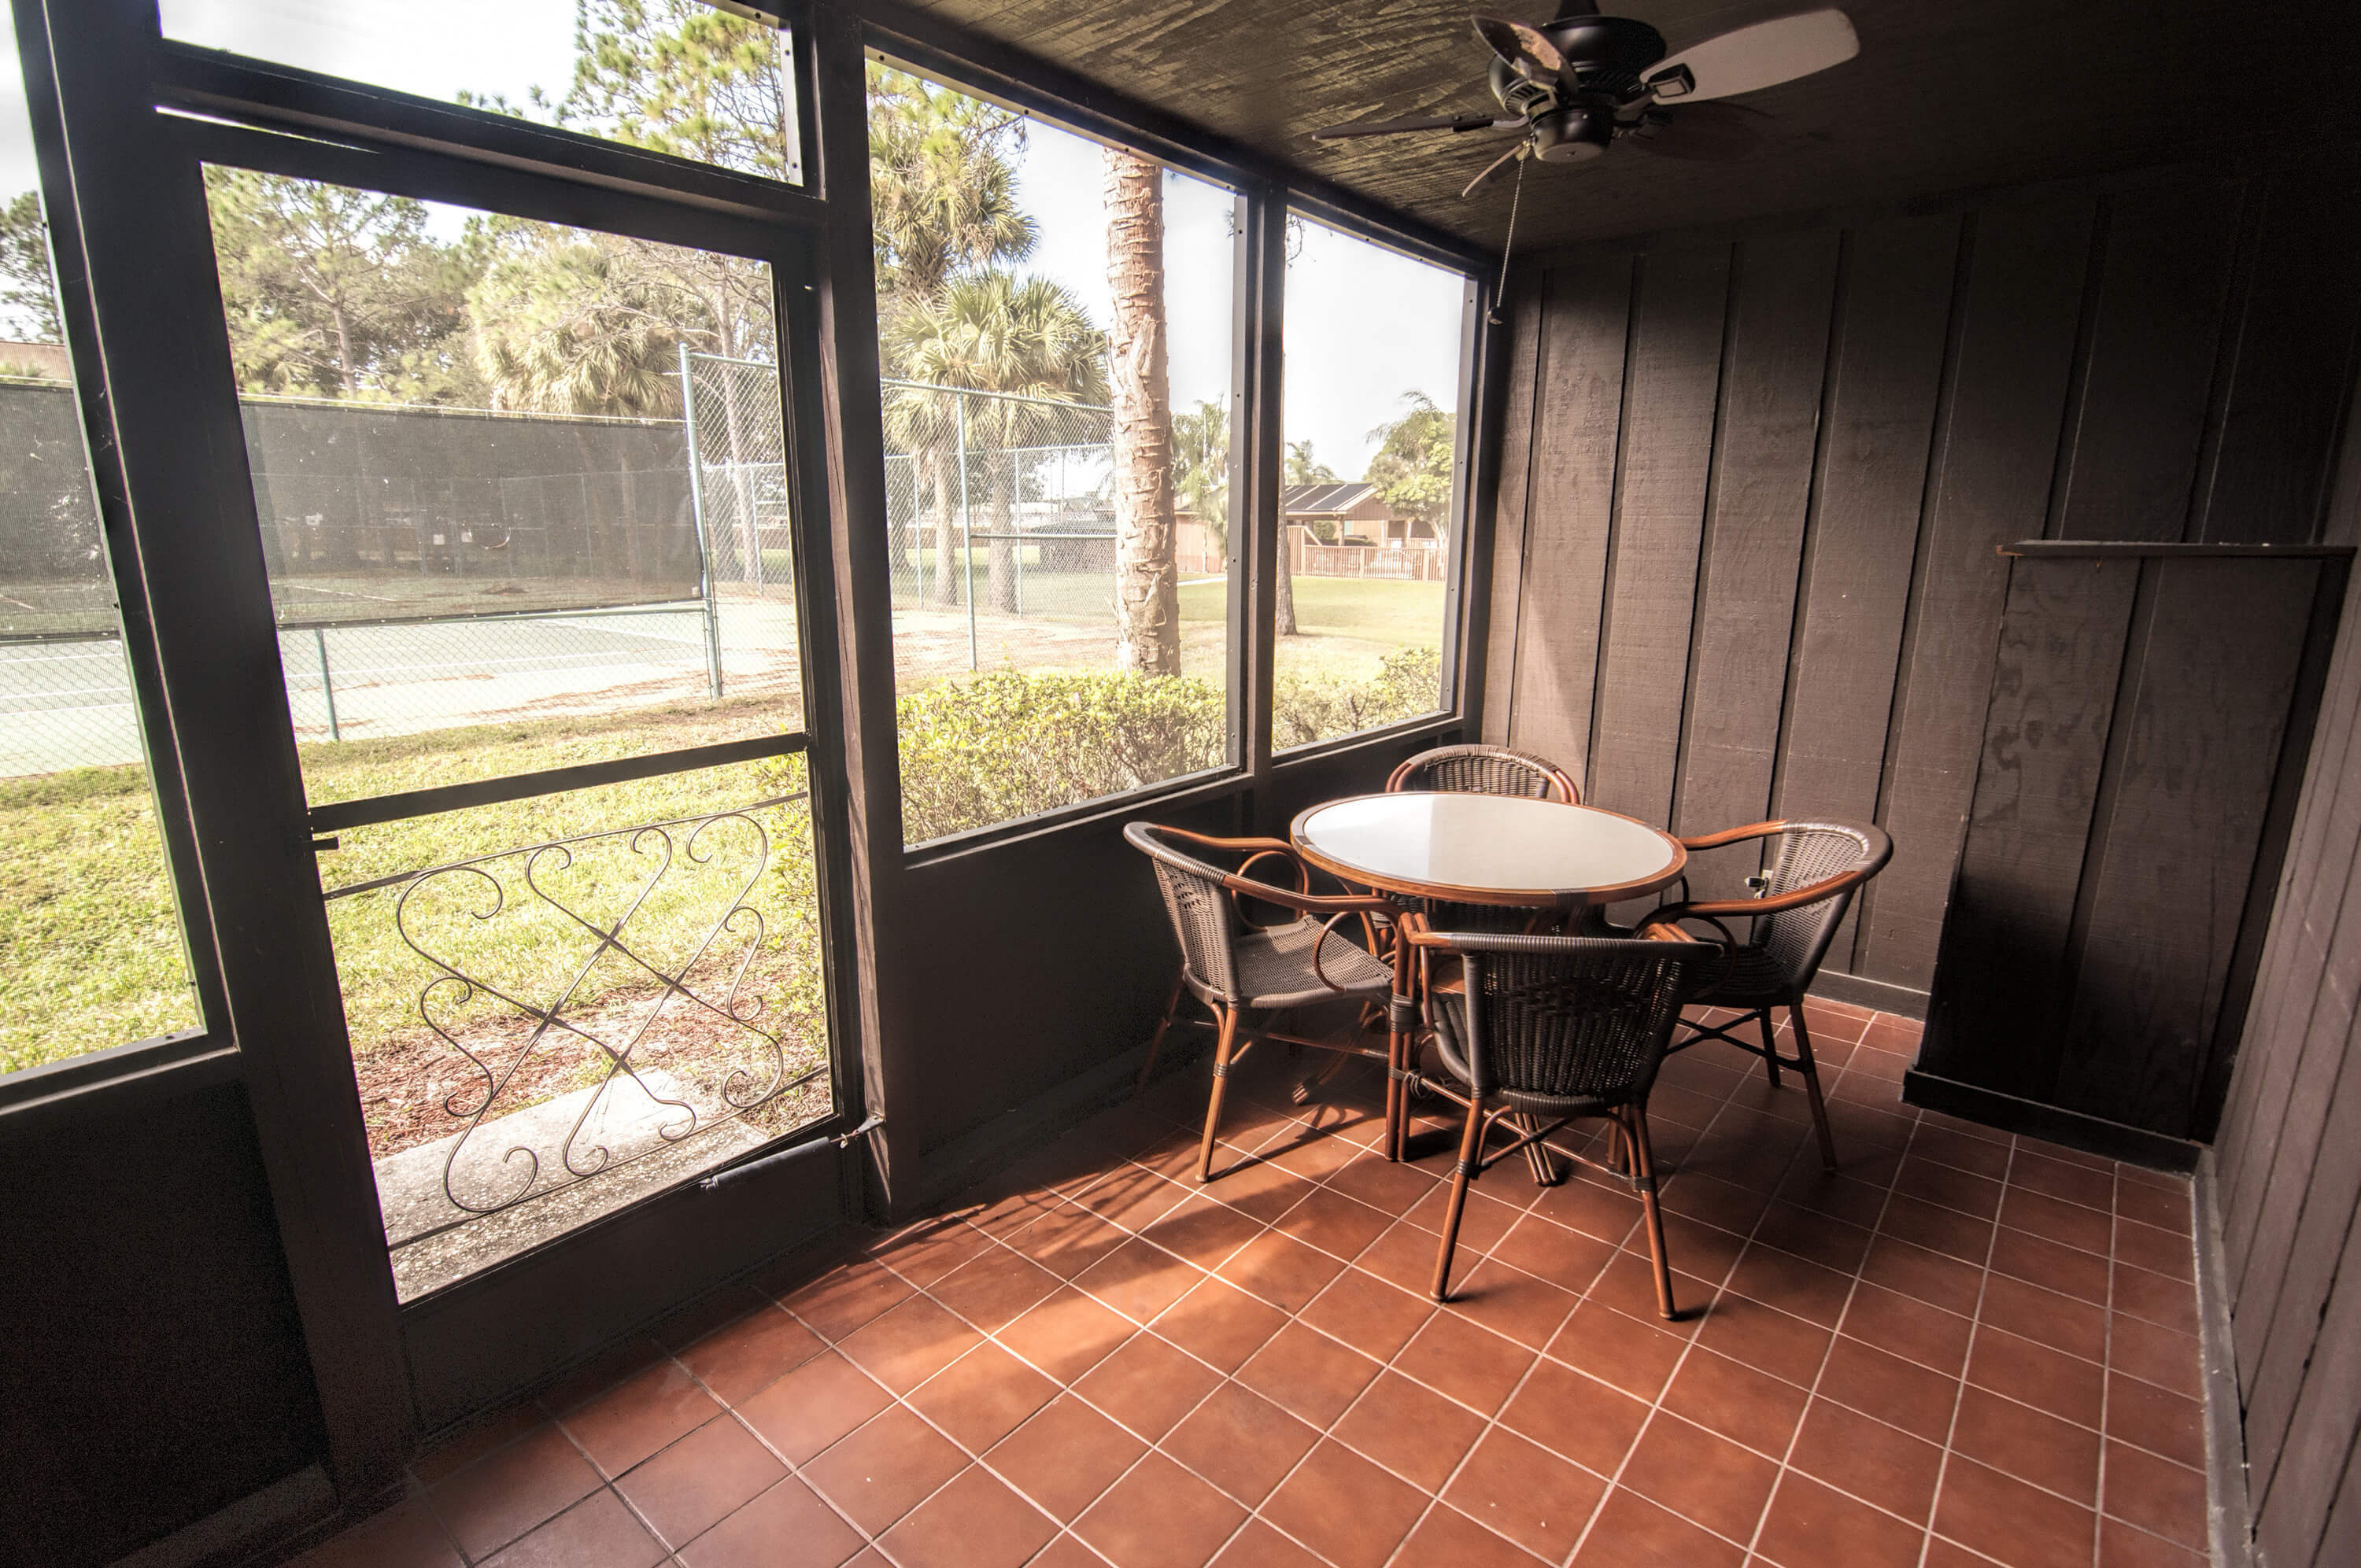 Screened in Patio at the Deluxe Lodge Suite |  Westgate River Ranch Resort & Rodeo | Westgate Resorts